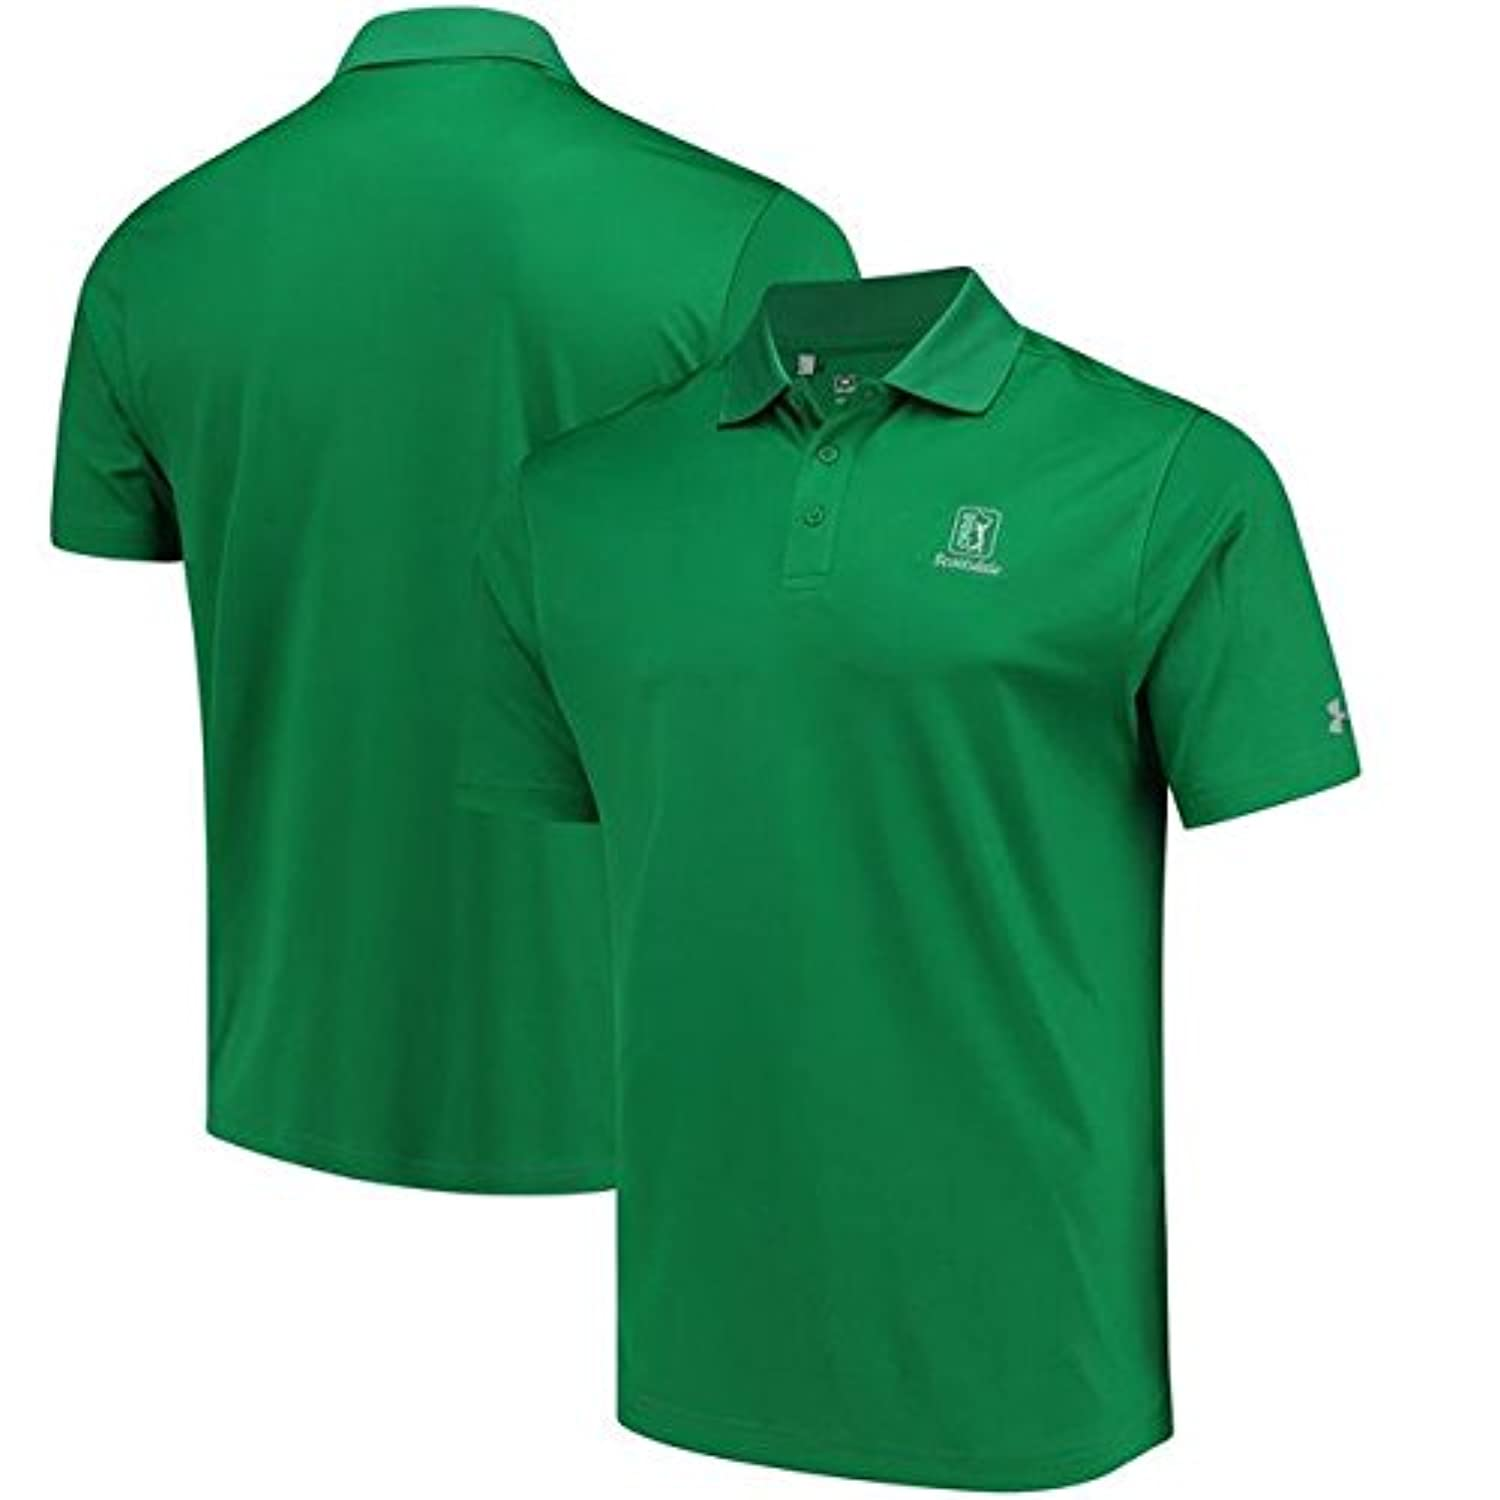 Under Armour Under Armour TPC Scottsdale Kelly Green Performance Polo スポーツ用品 【並行輸入品】